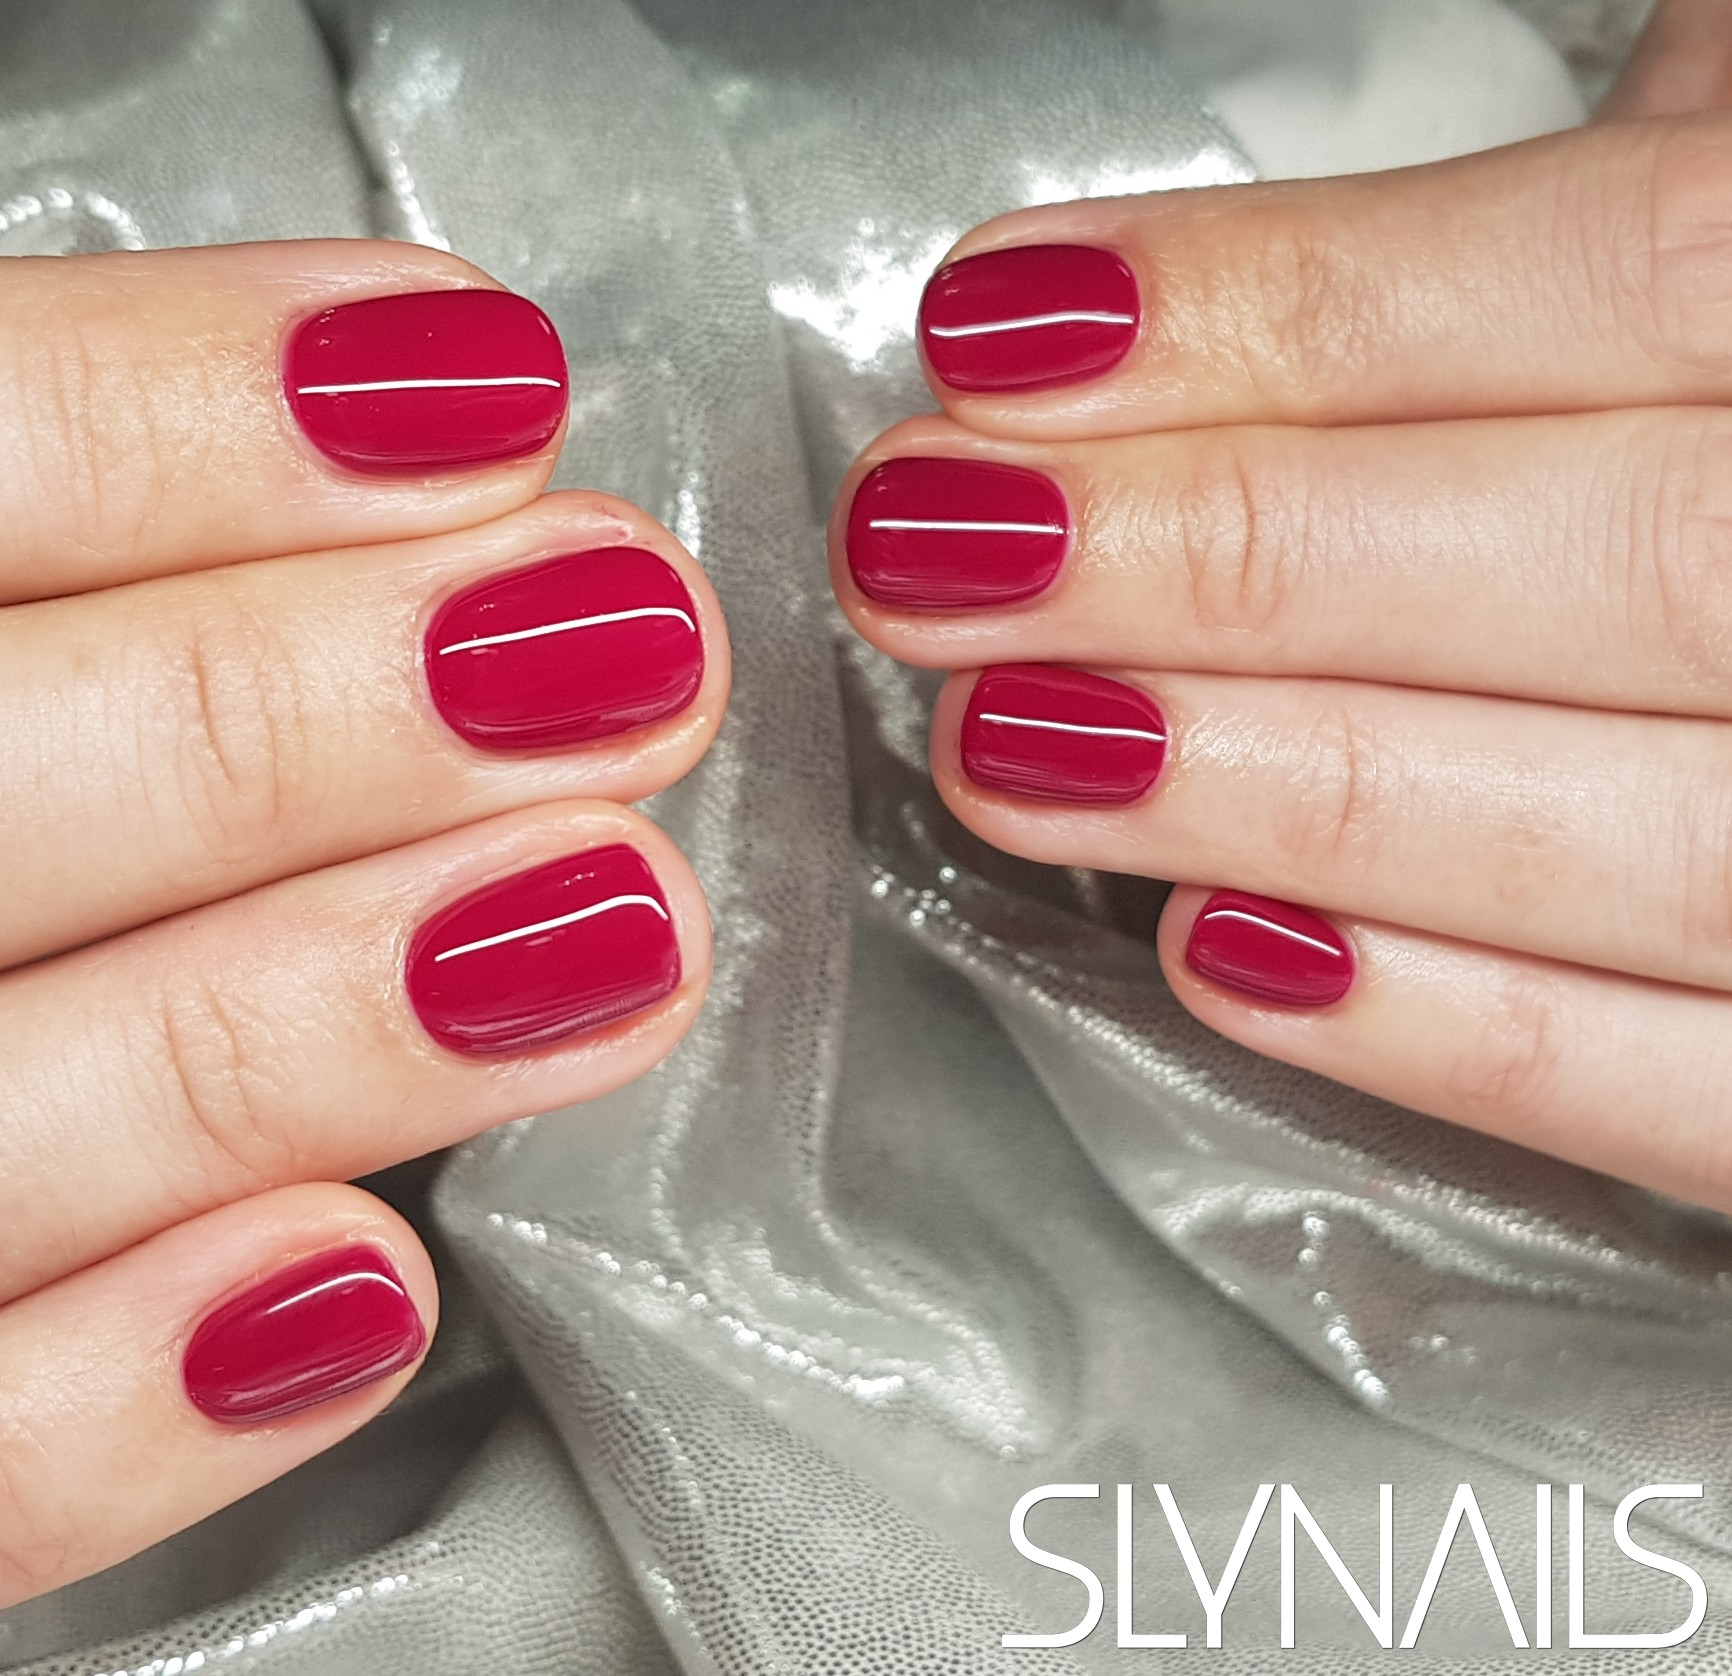 Gel-lac (gel polish), Red, Square, One color, Without decoration